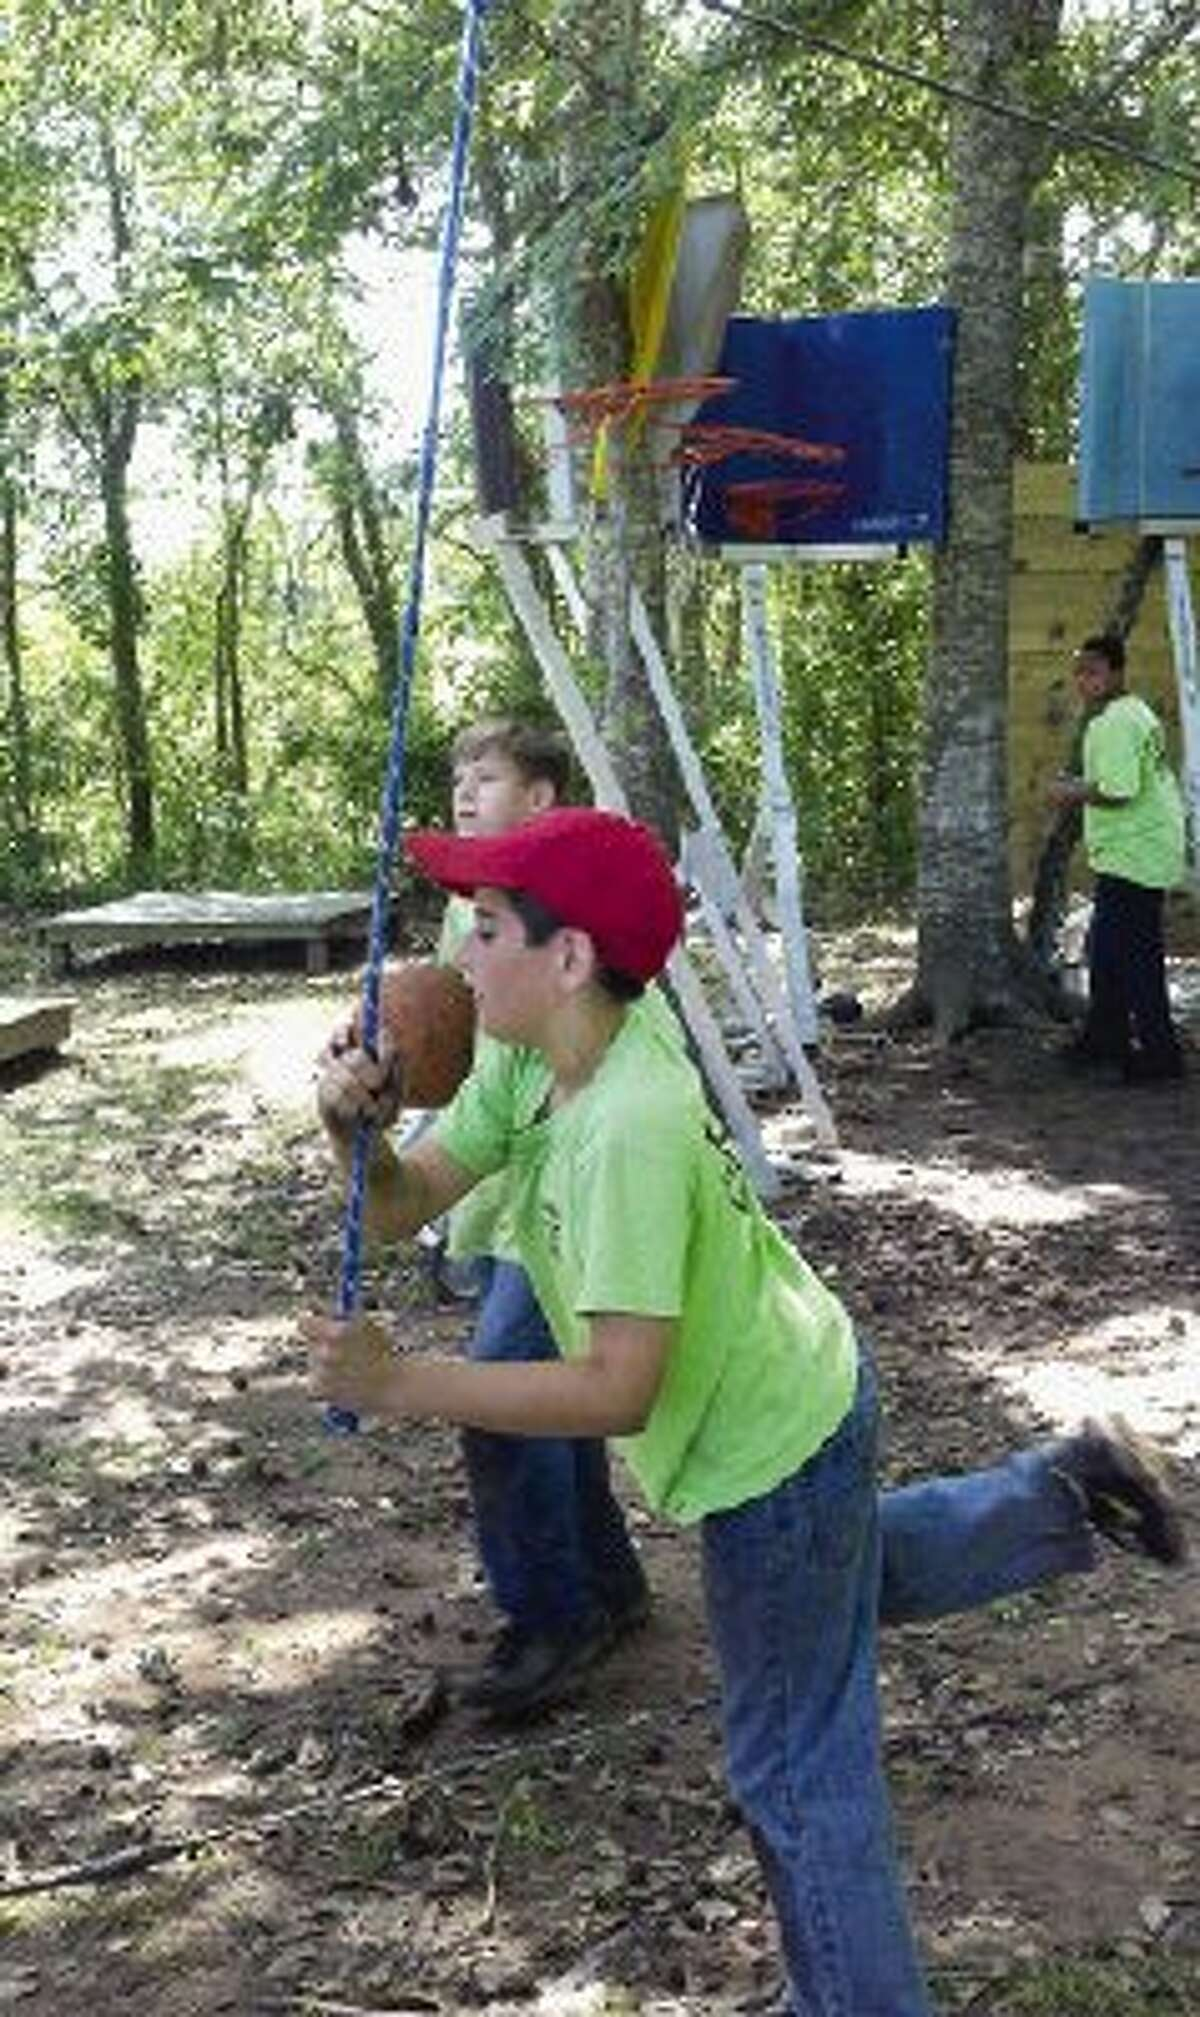 Calvary Baptist School students play around a challenge course while watching other students and volunteers build a zip line at Gospel Lakes Ranch in New Waverly Thursday.